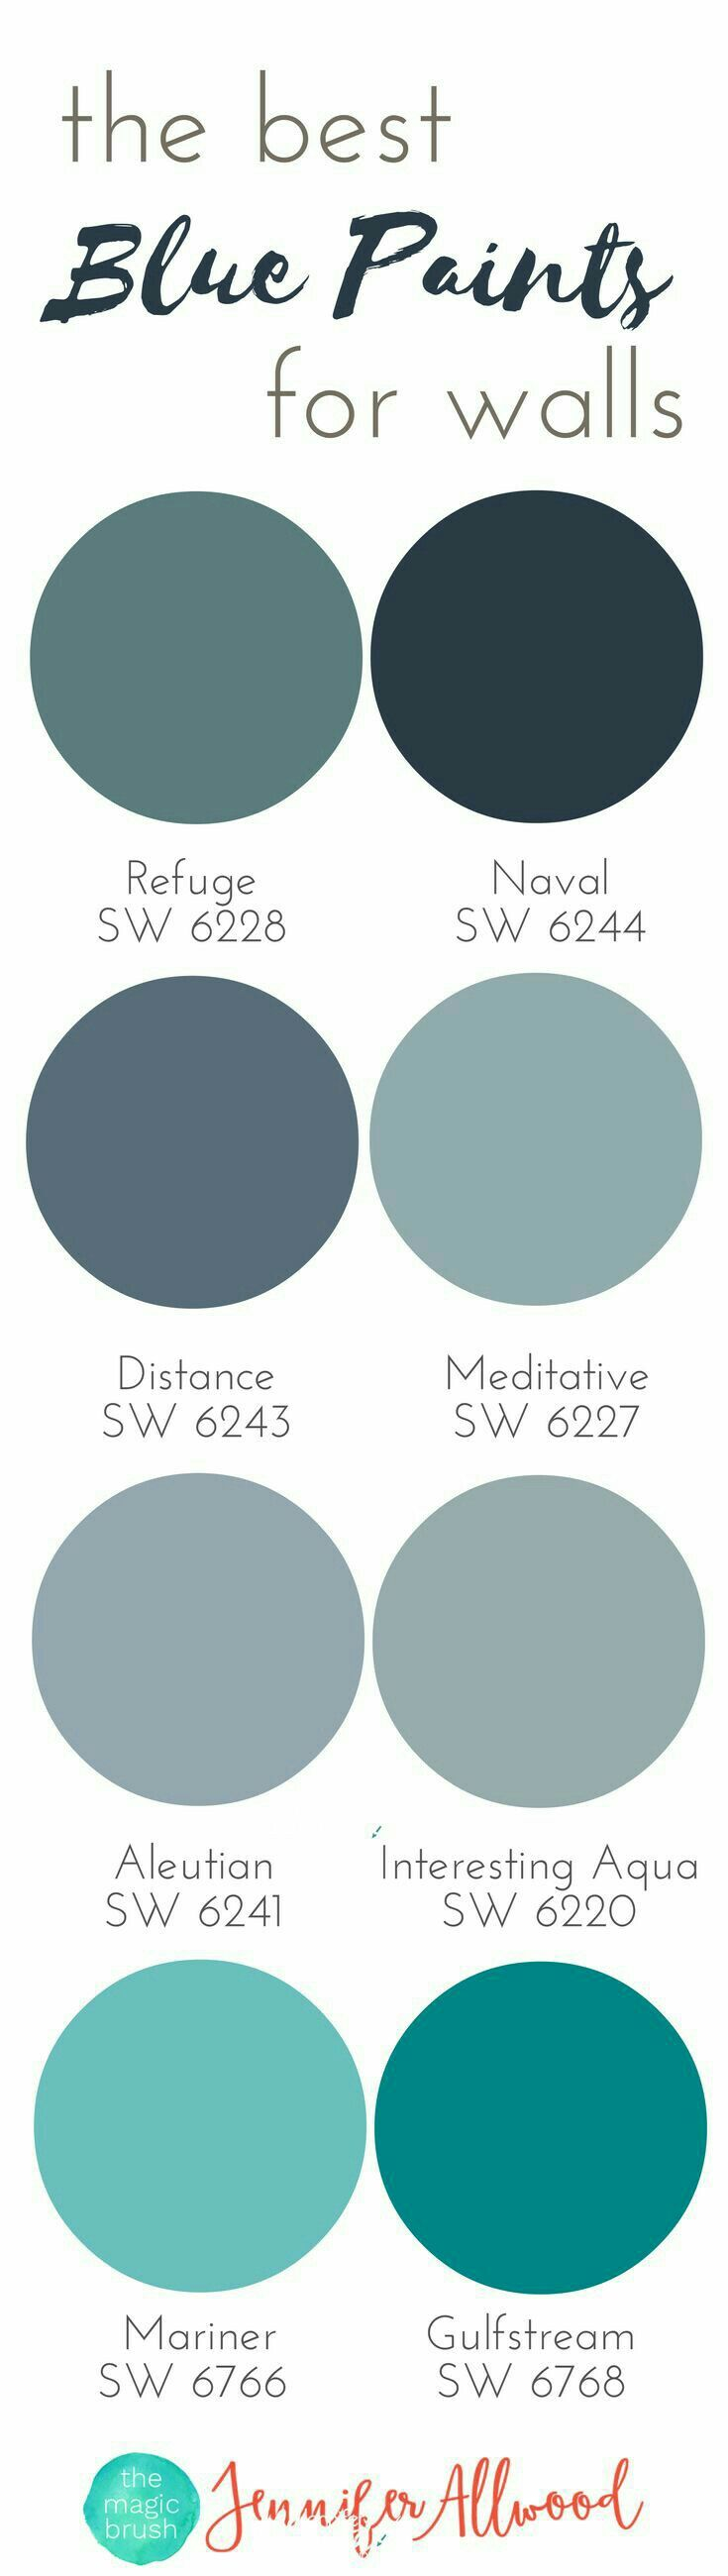 Blue...my favorite decorating color. Distance SW 6243 for base of farmhouse table